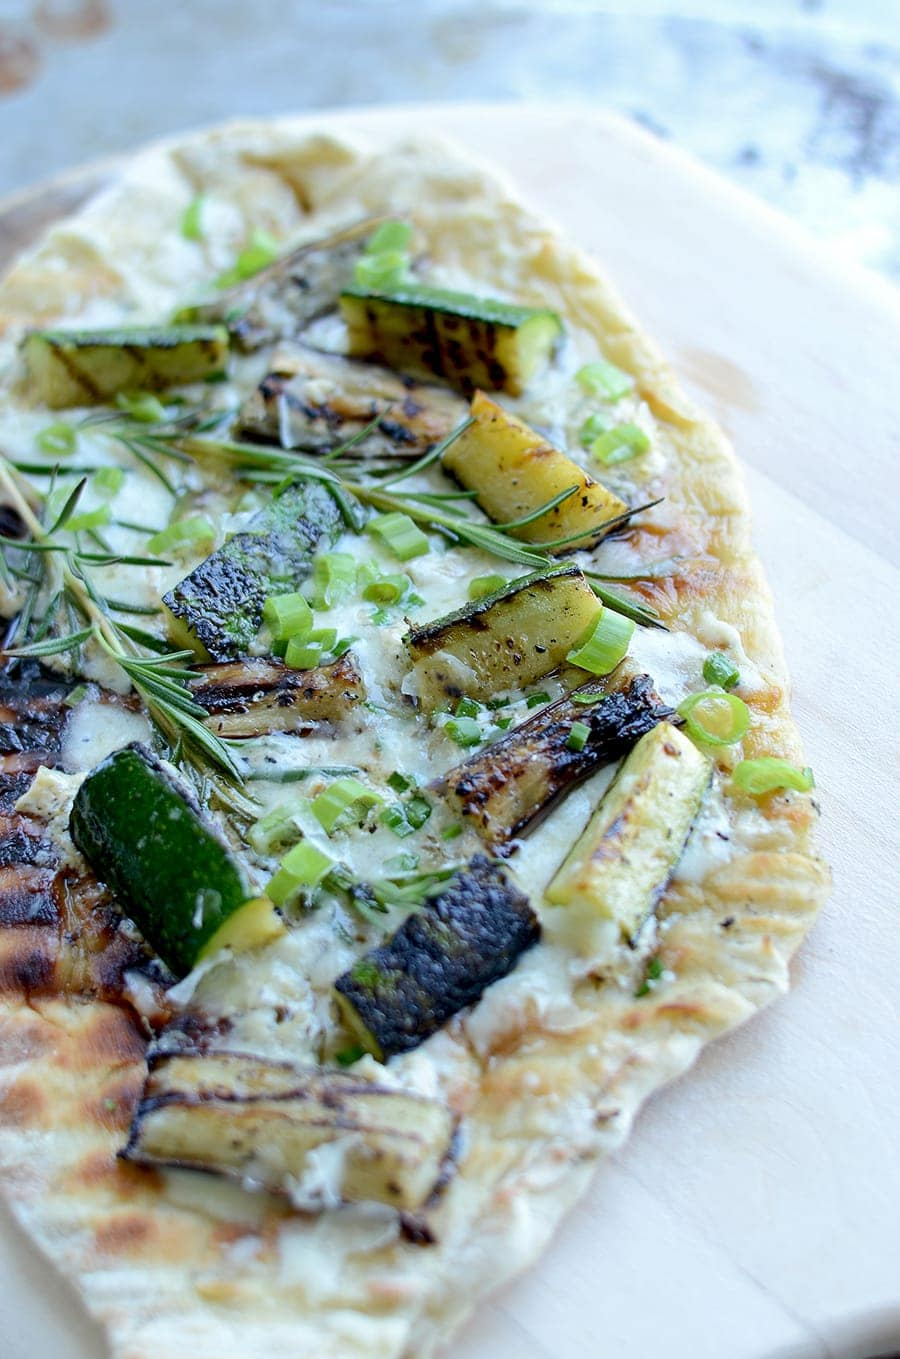 Grilled Vegetable Pizza with Lemon Cream Sauce will take your cookout to the next level. Nothing comes closer to that pizzeria flavor!